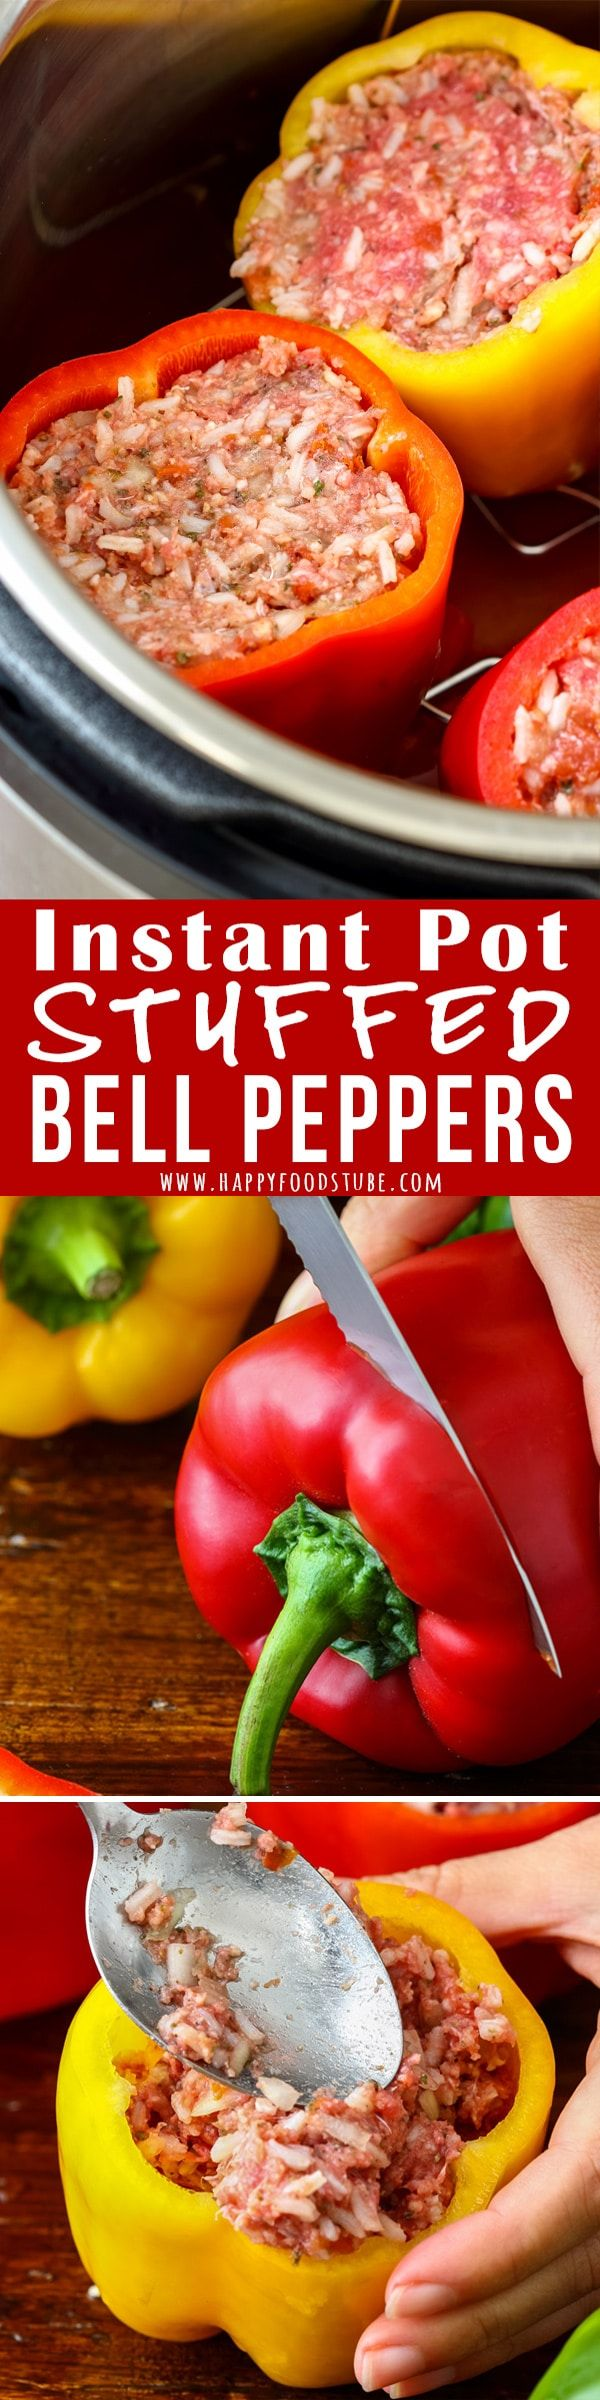 Instant Pot Stuffed Bell Peppers Recipe Instant Pot Dinner Recipes Pressure Cooker Recipes Stuffed Peppers